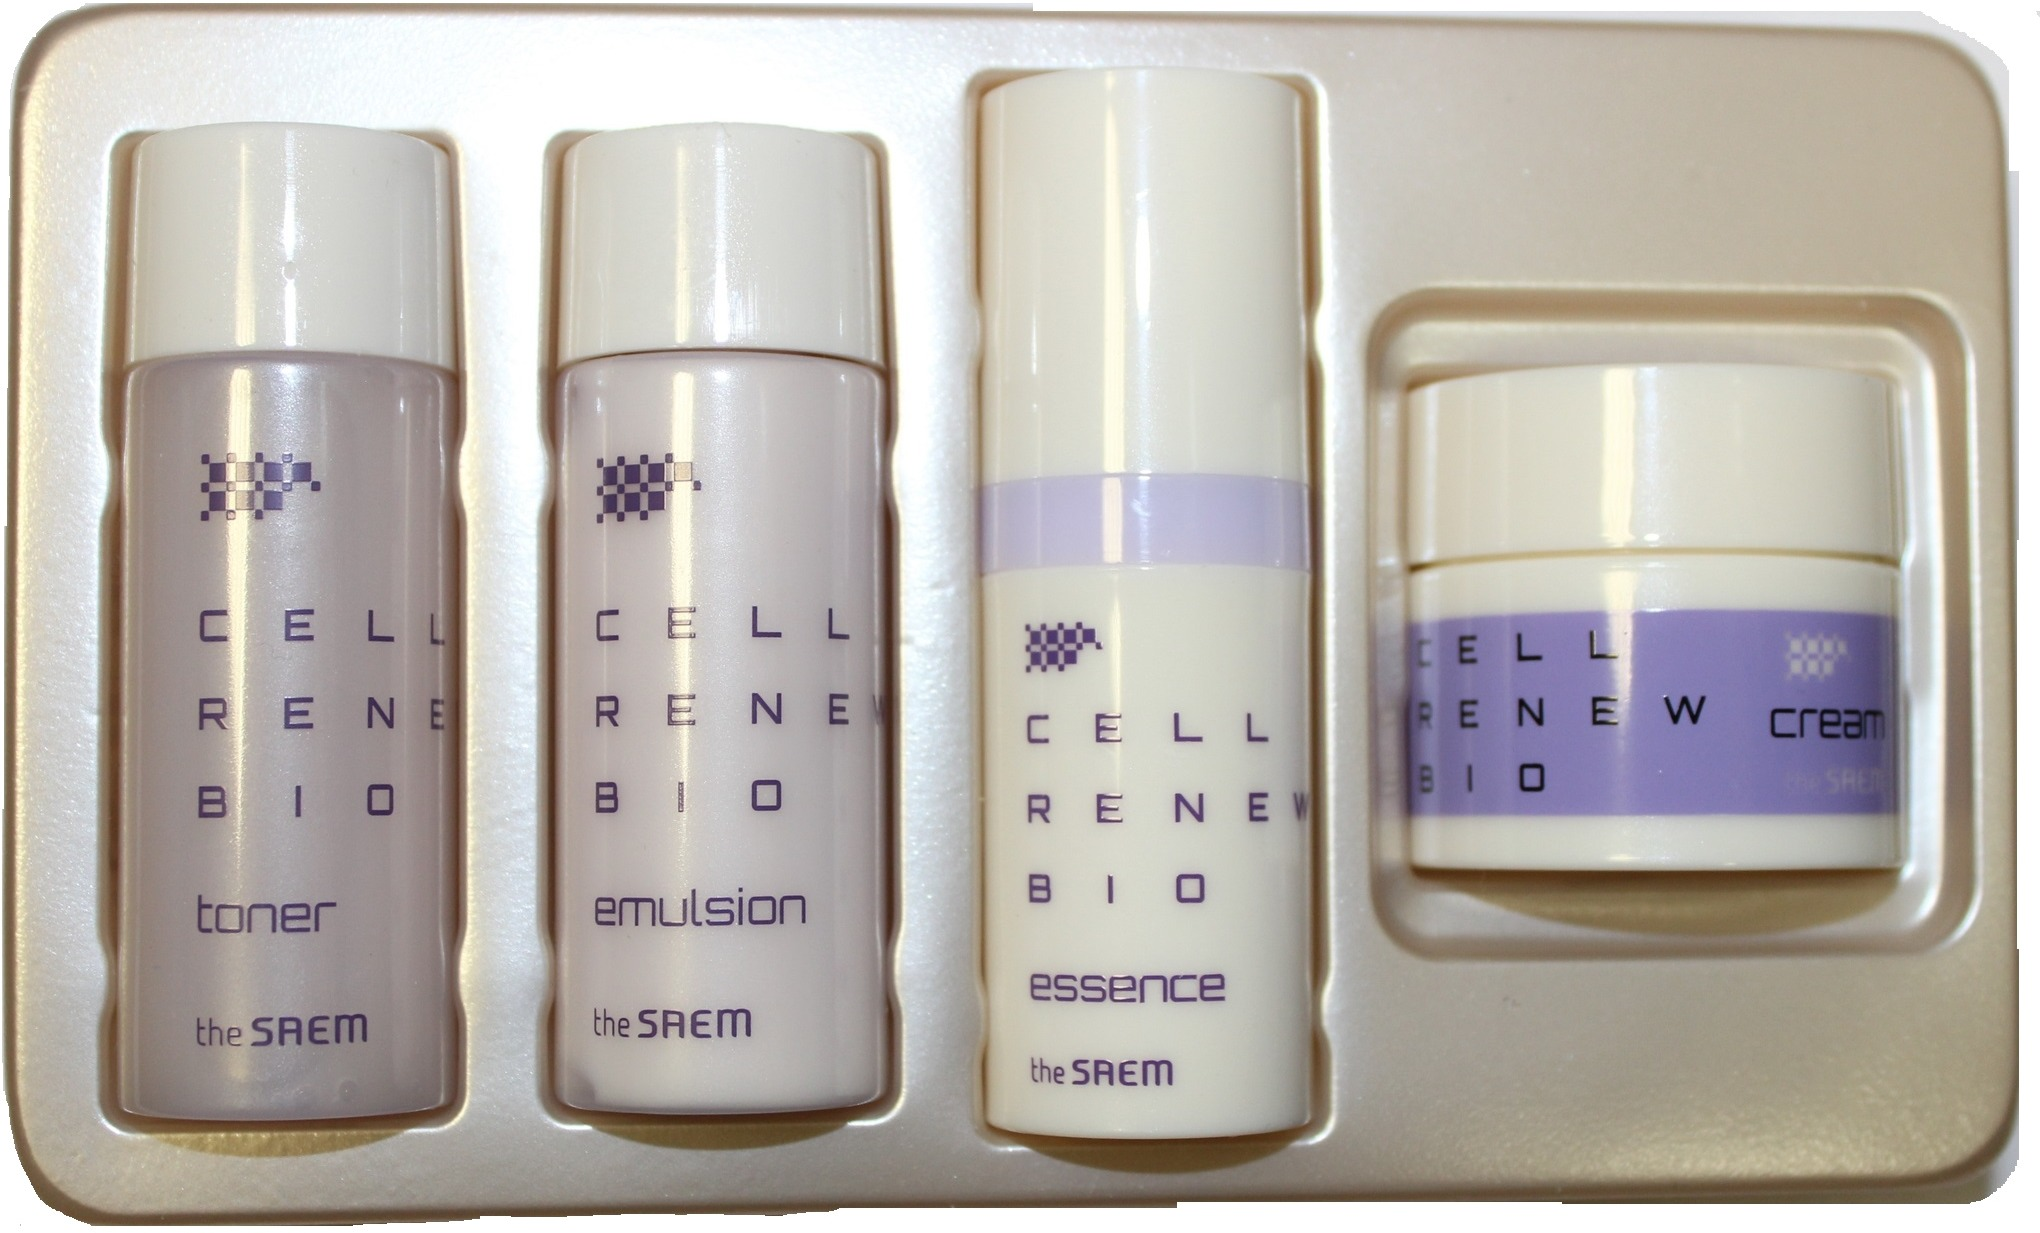 The Saem Cell Renew Bio Skin Care Special  Gift